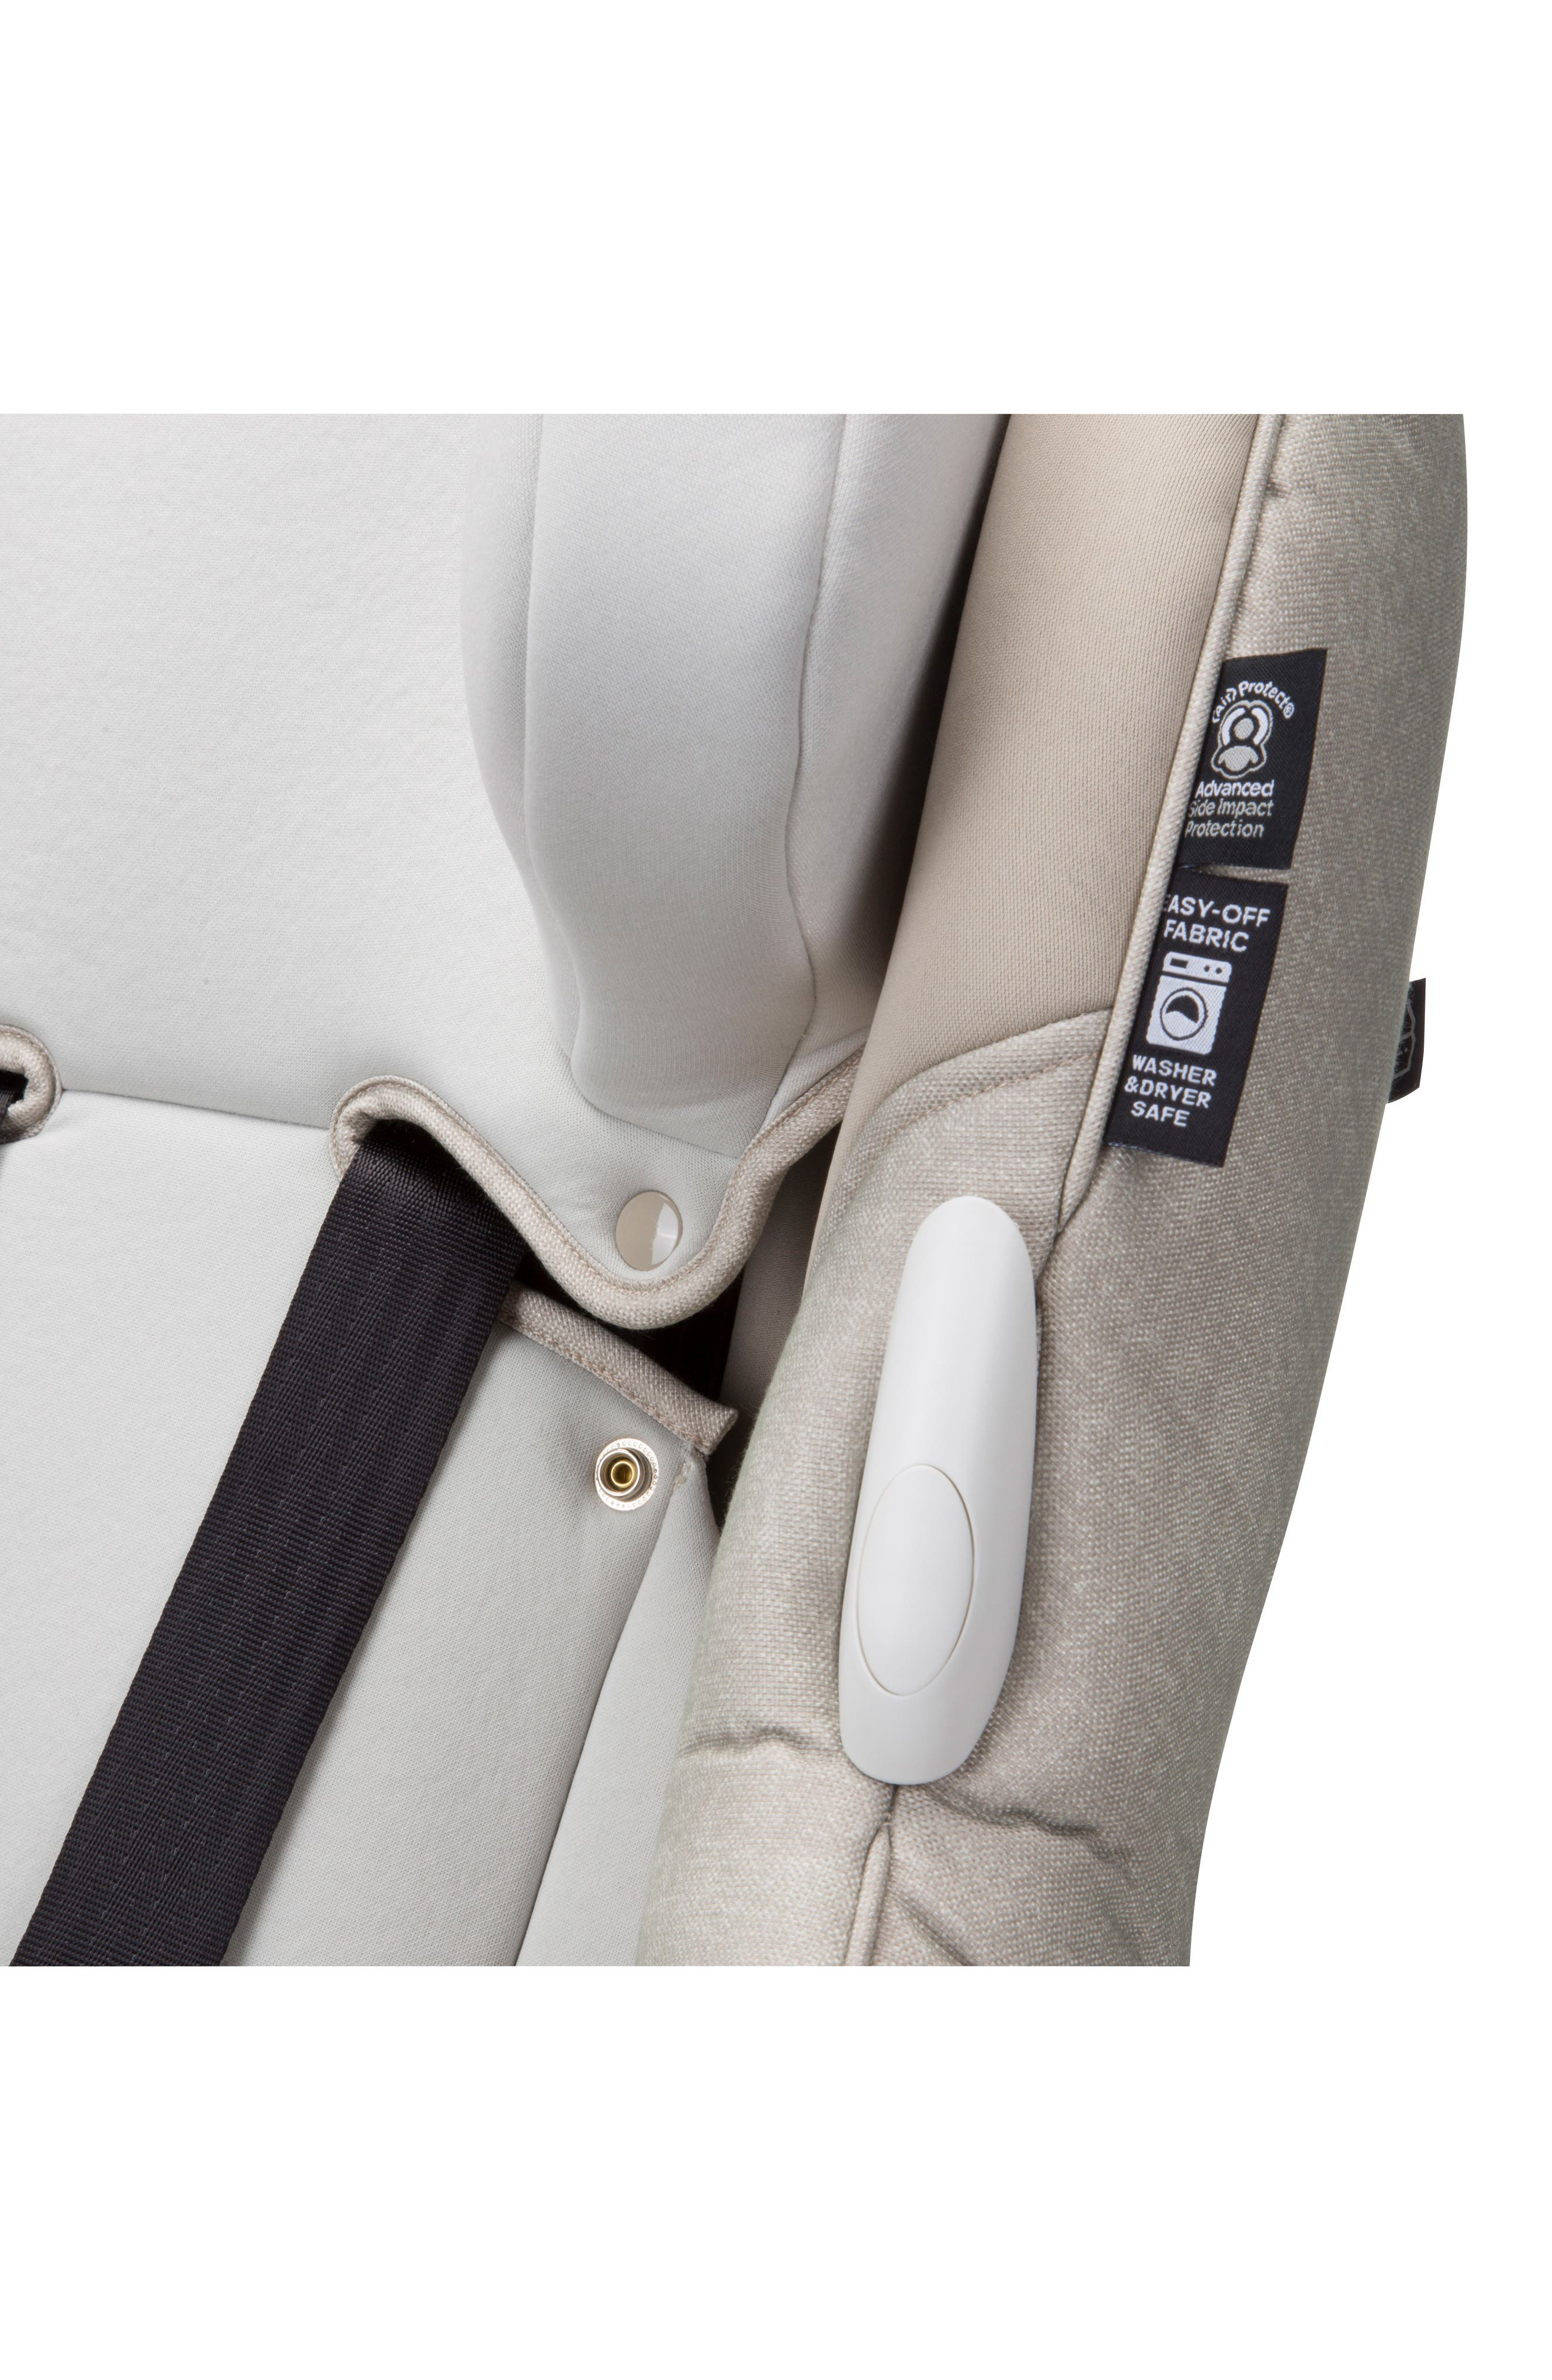 Pria<sup>™</sup> 85 Max Nomad Collection Convertible Car Seat,                             Alternate thumbnail 12, color,                             Nomad Sand